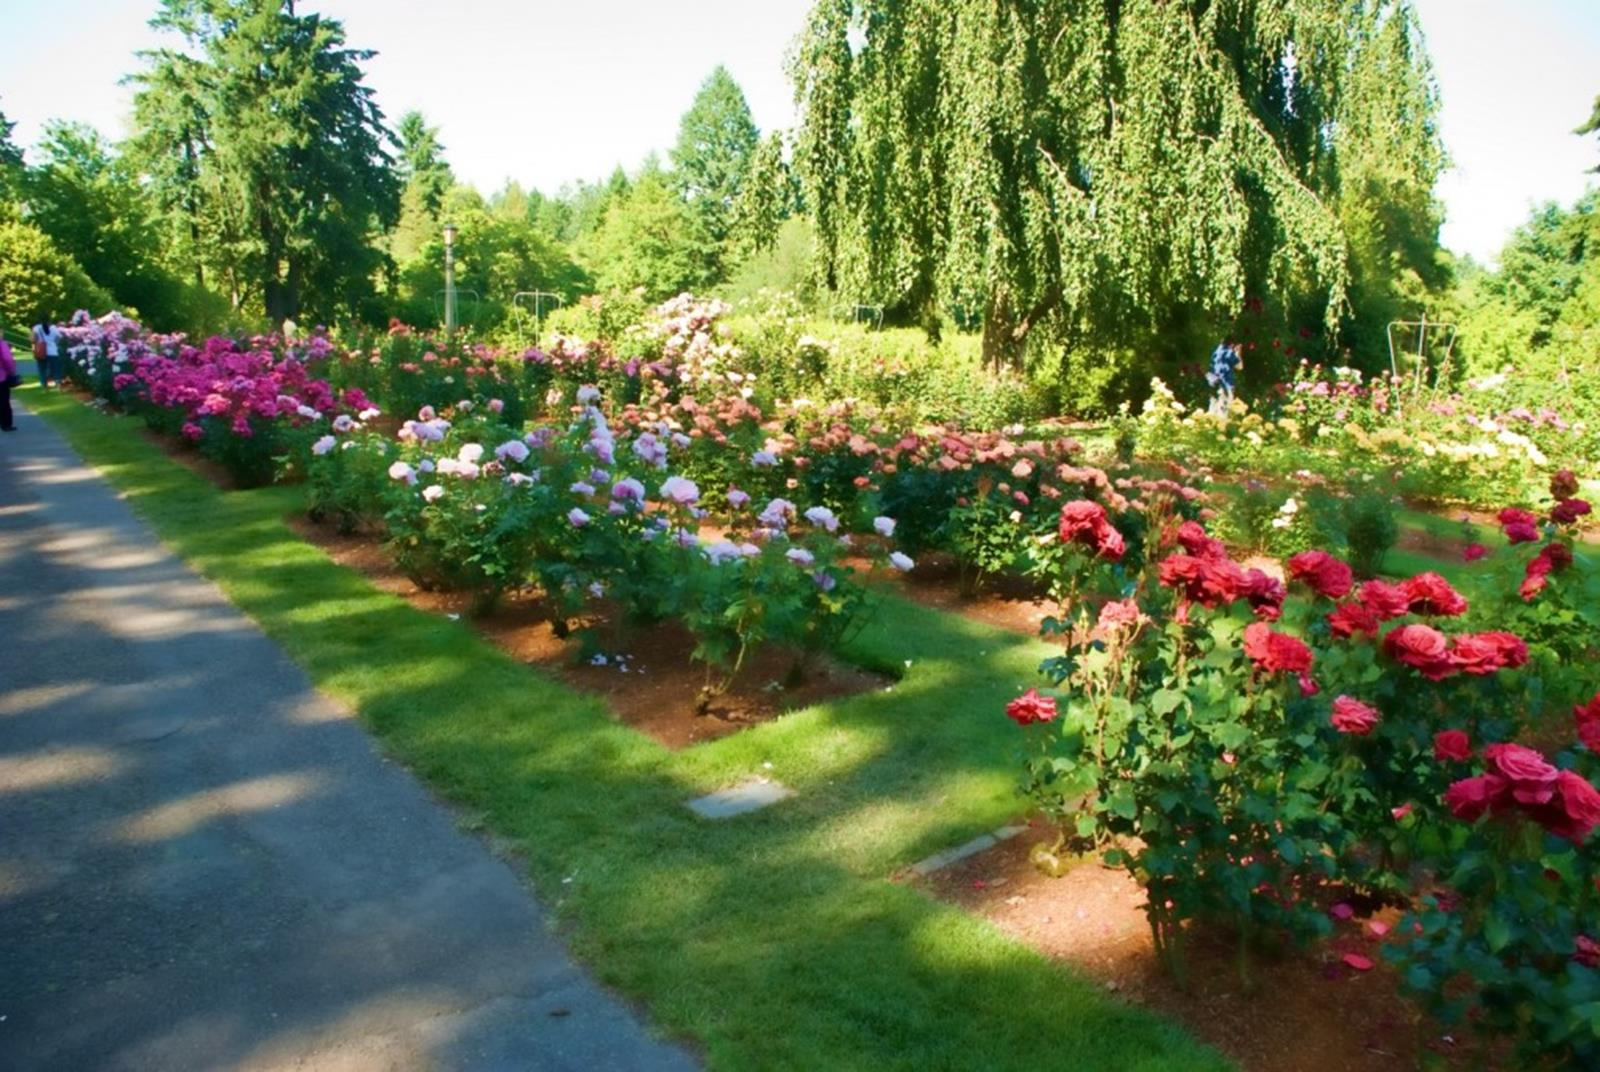 Free things to do in portland - International Rose Test Garden